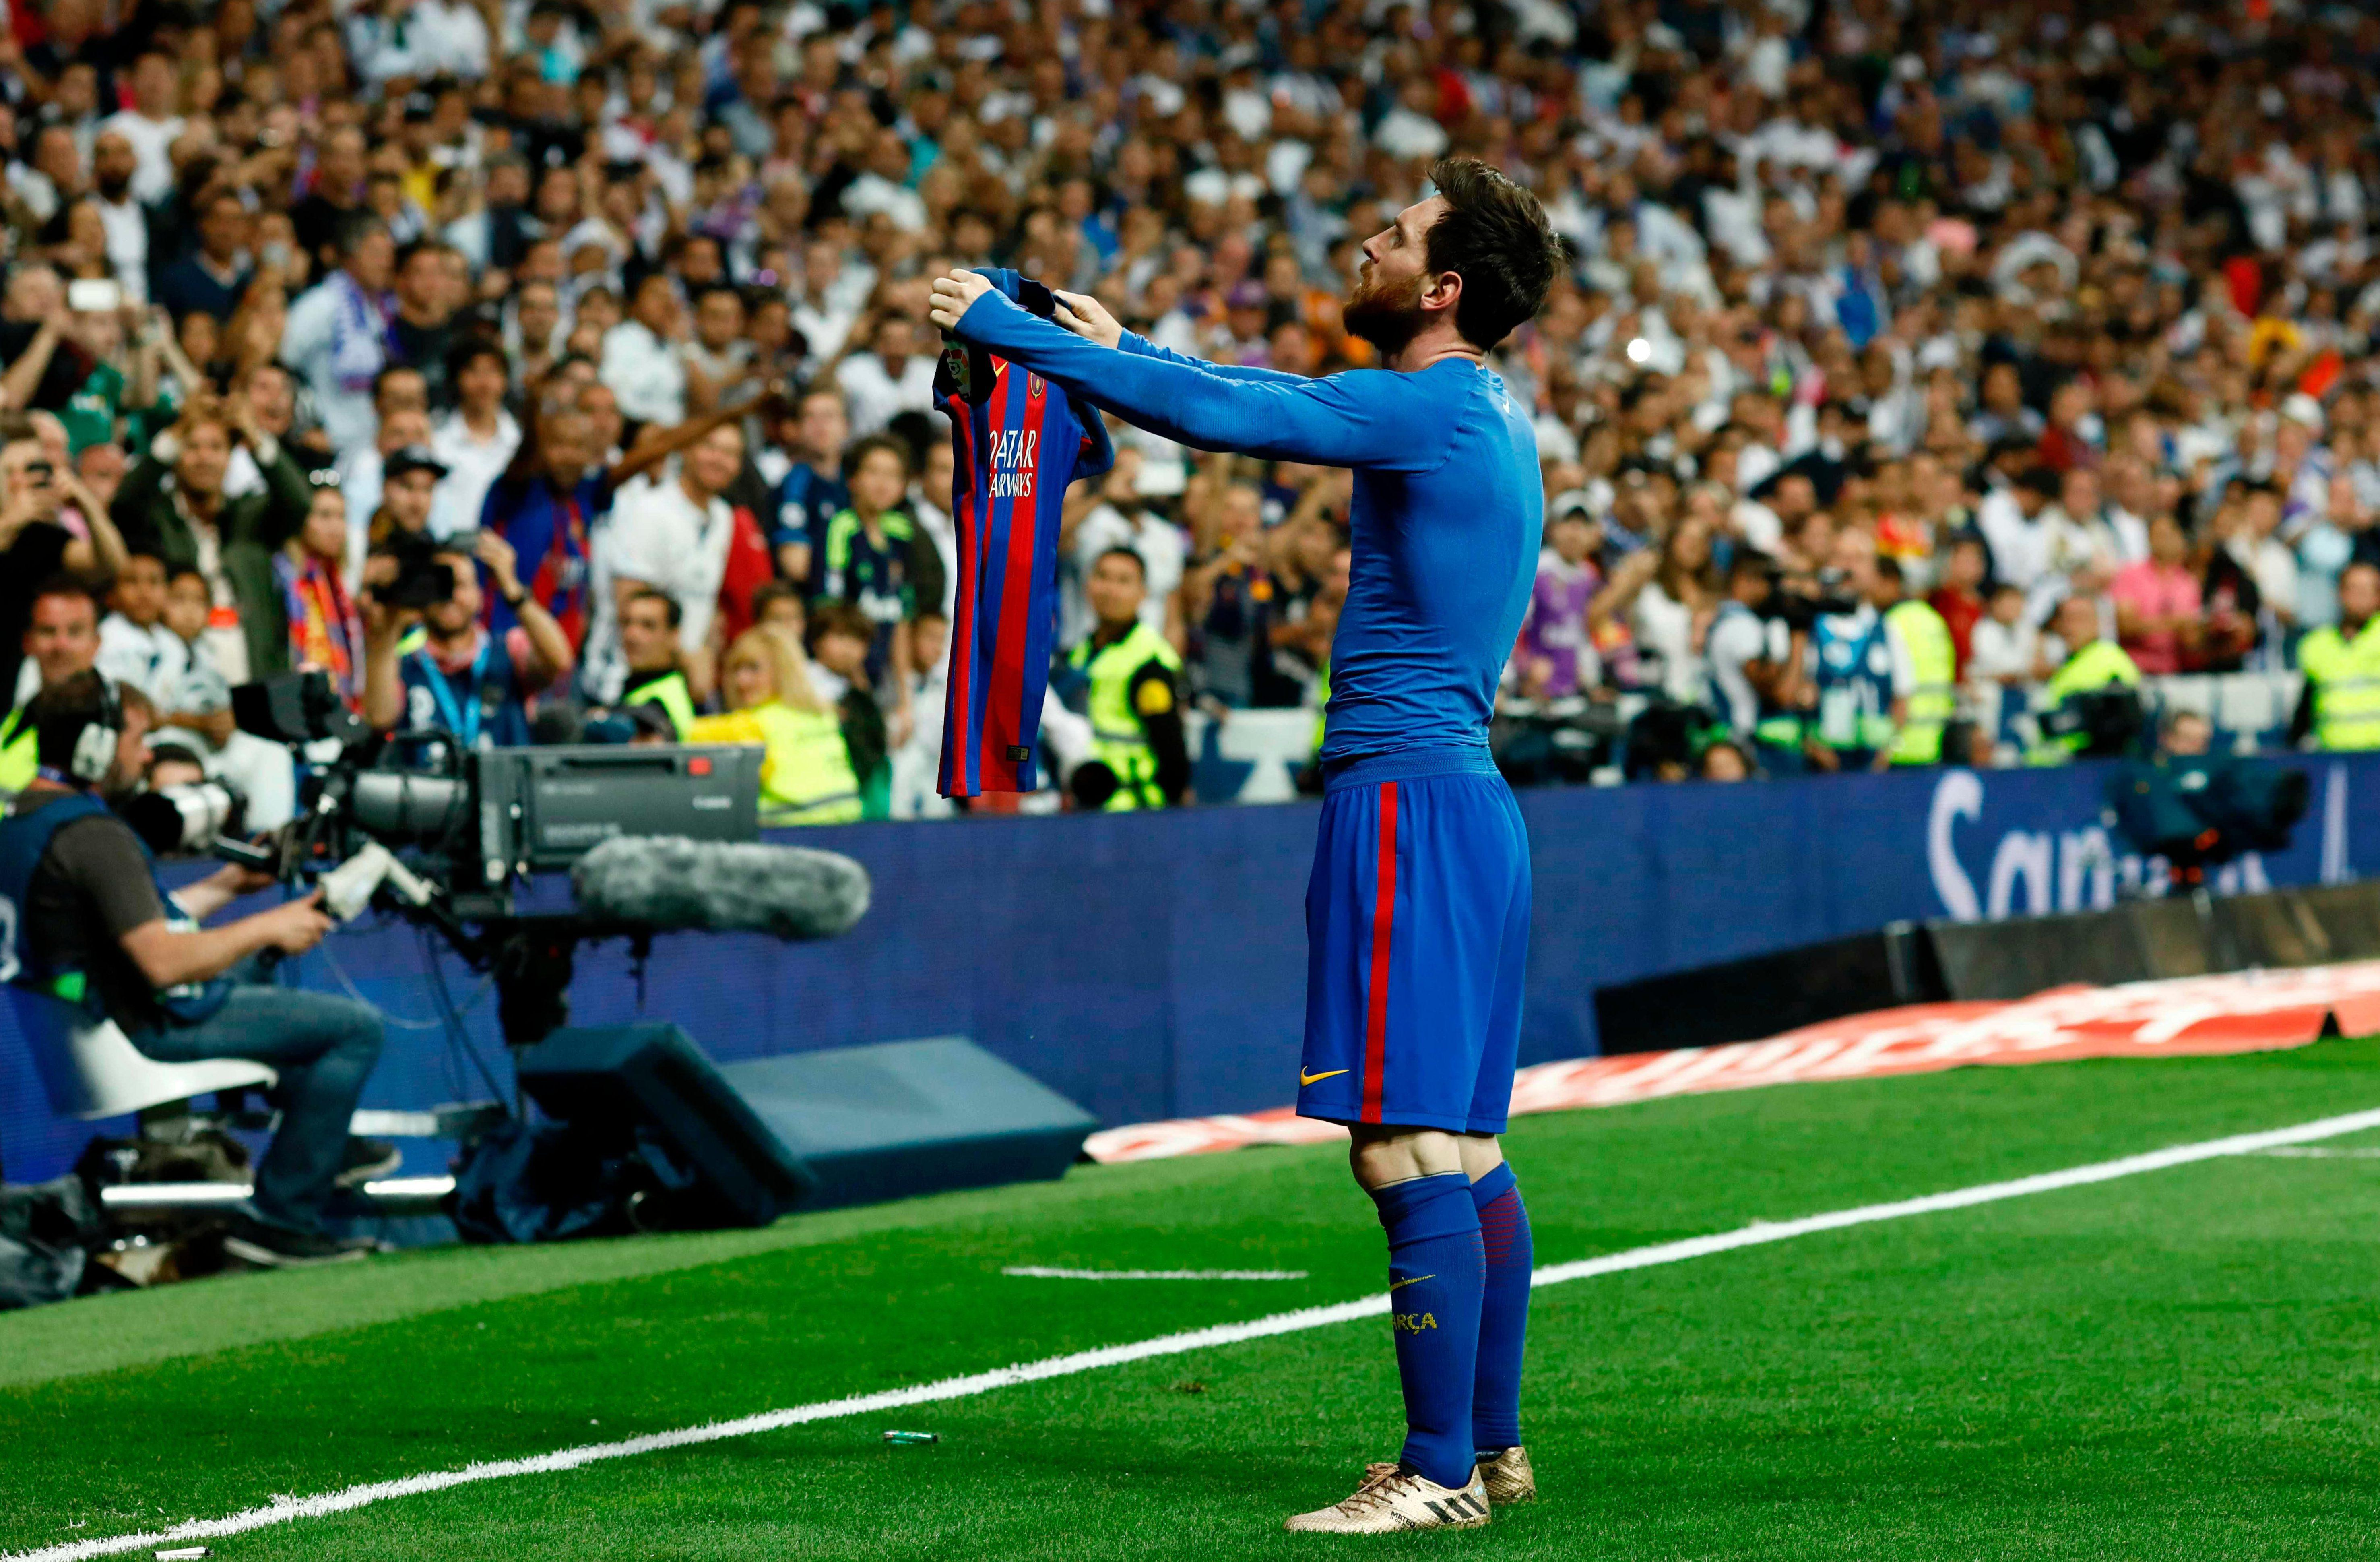 Lionel Messi was booked for taking his shirt off in an iconic celebration that left the ref no choice